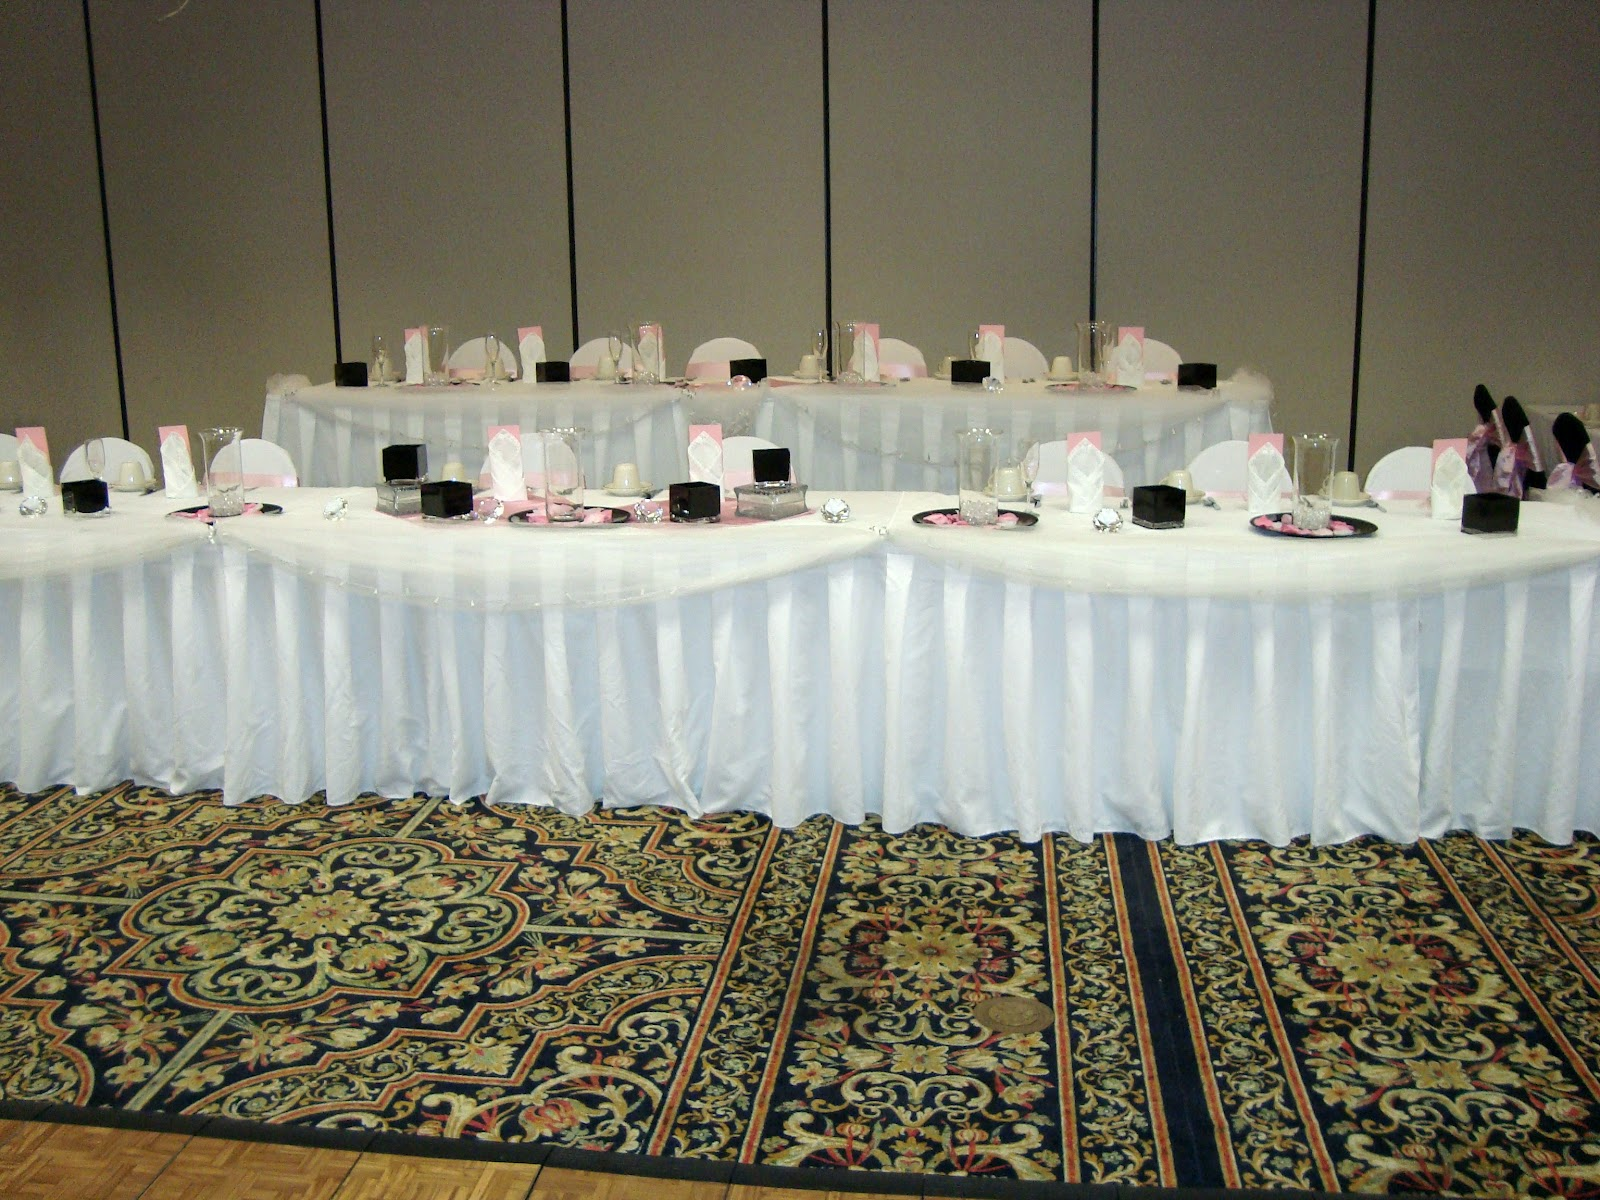 ... centerpiece at your head table or sweetheart table. If you have floral ...